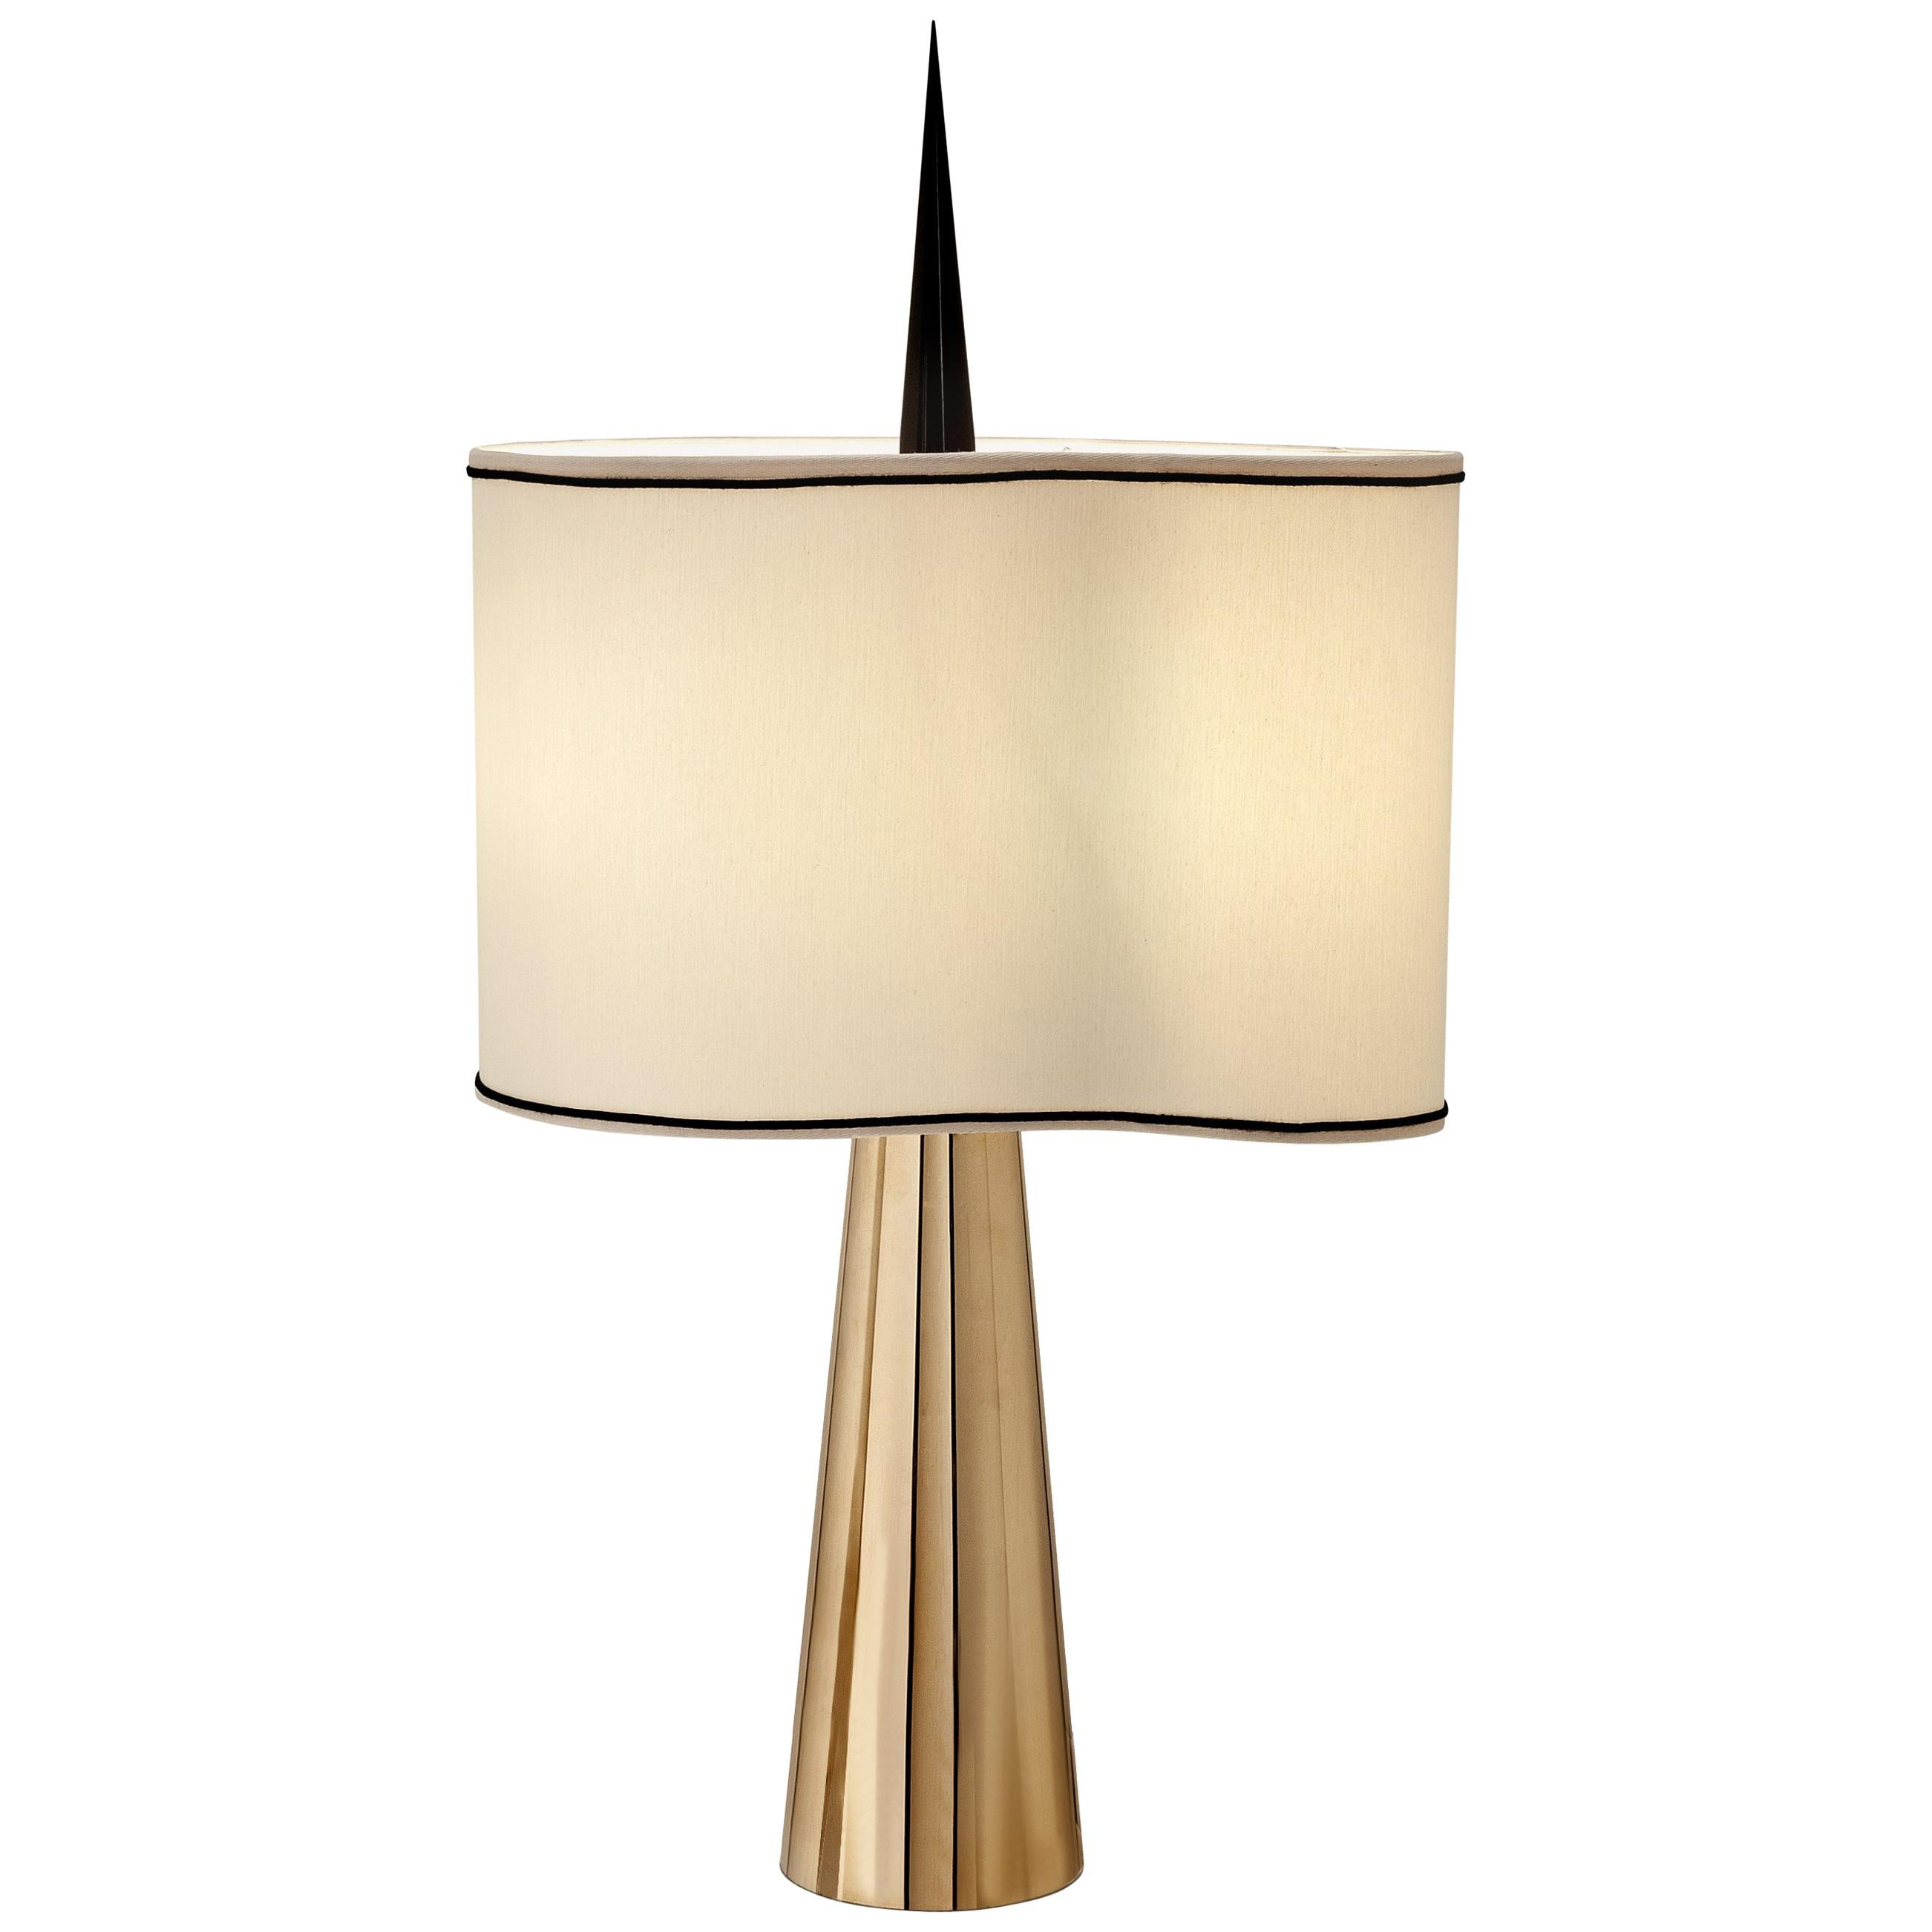 """Achille Salvagni """"Sting"""" Table Lamp, Burnished and Polished Brass, Contemporary"""